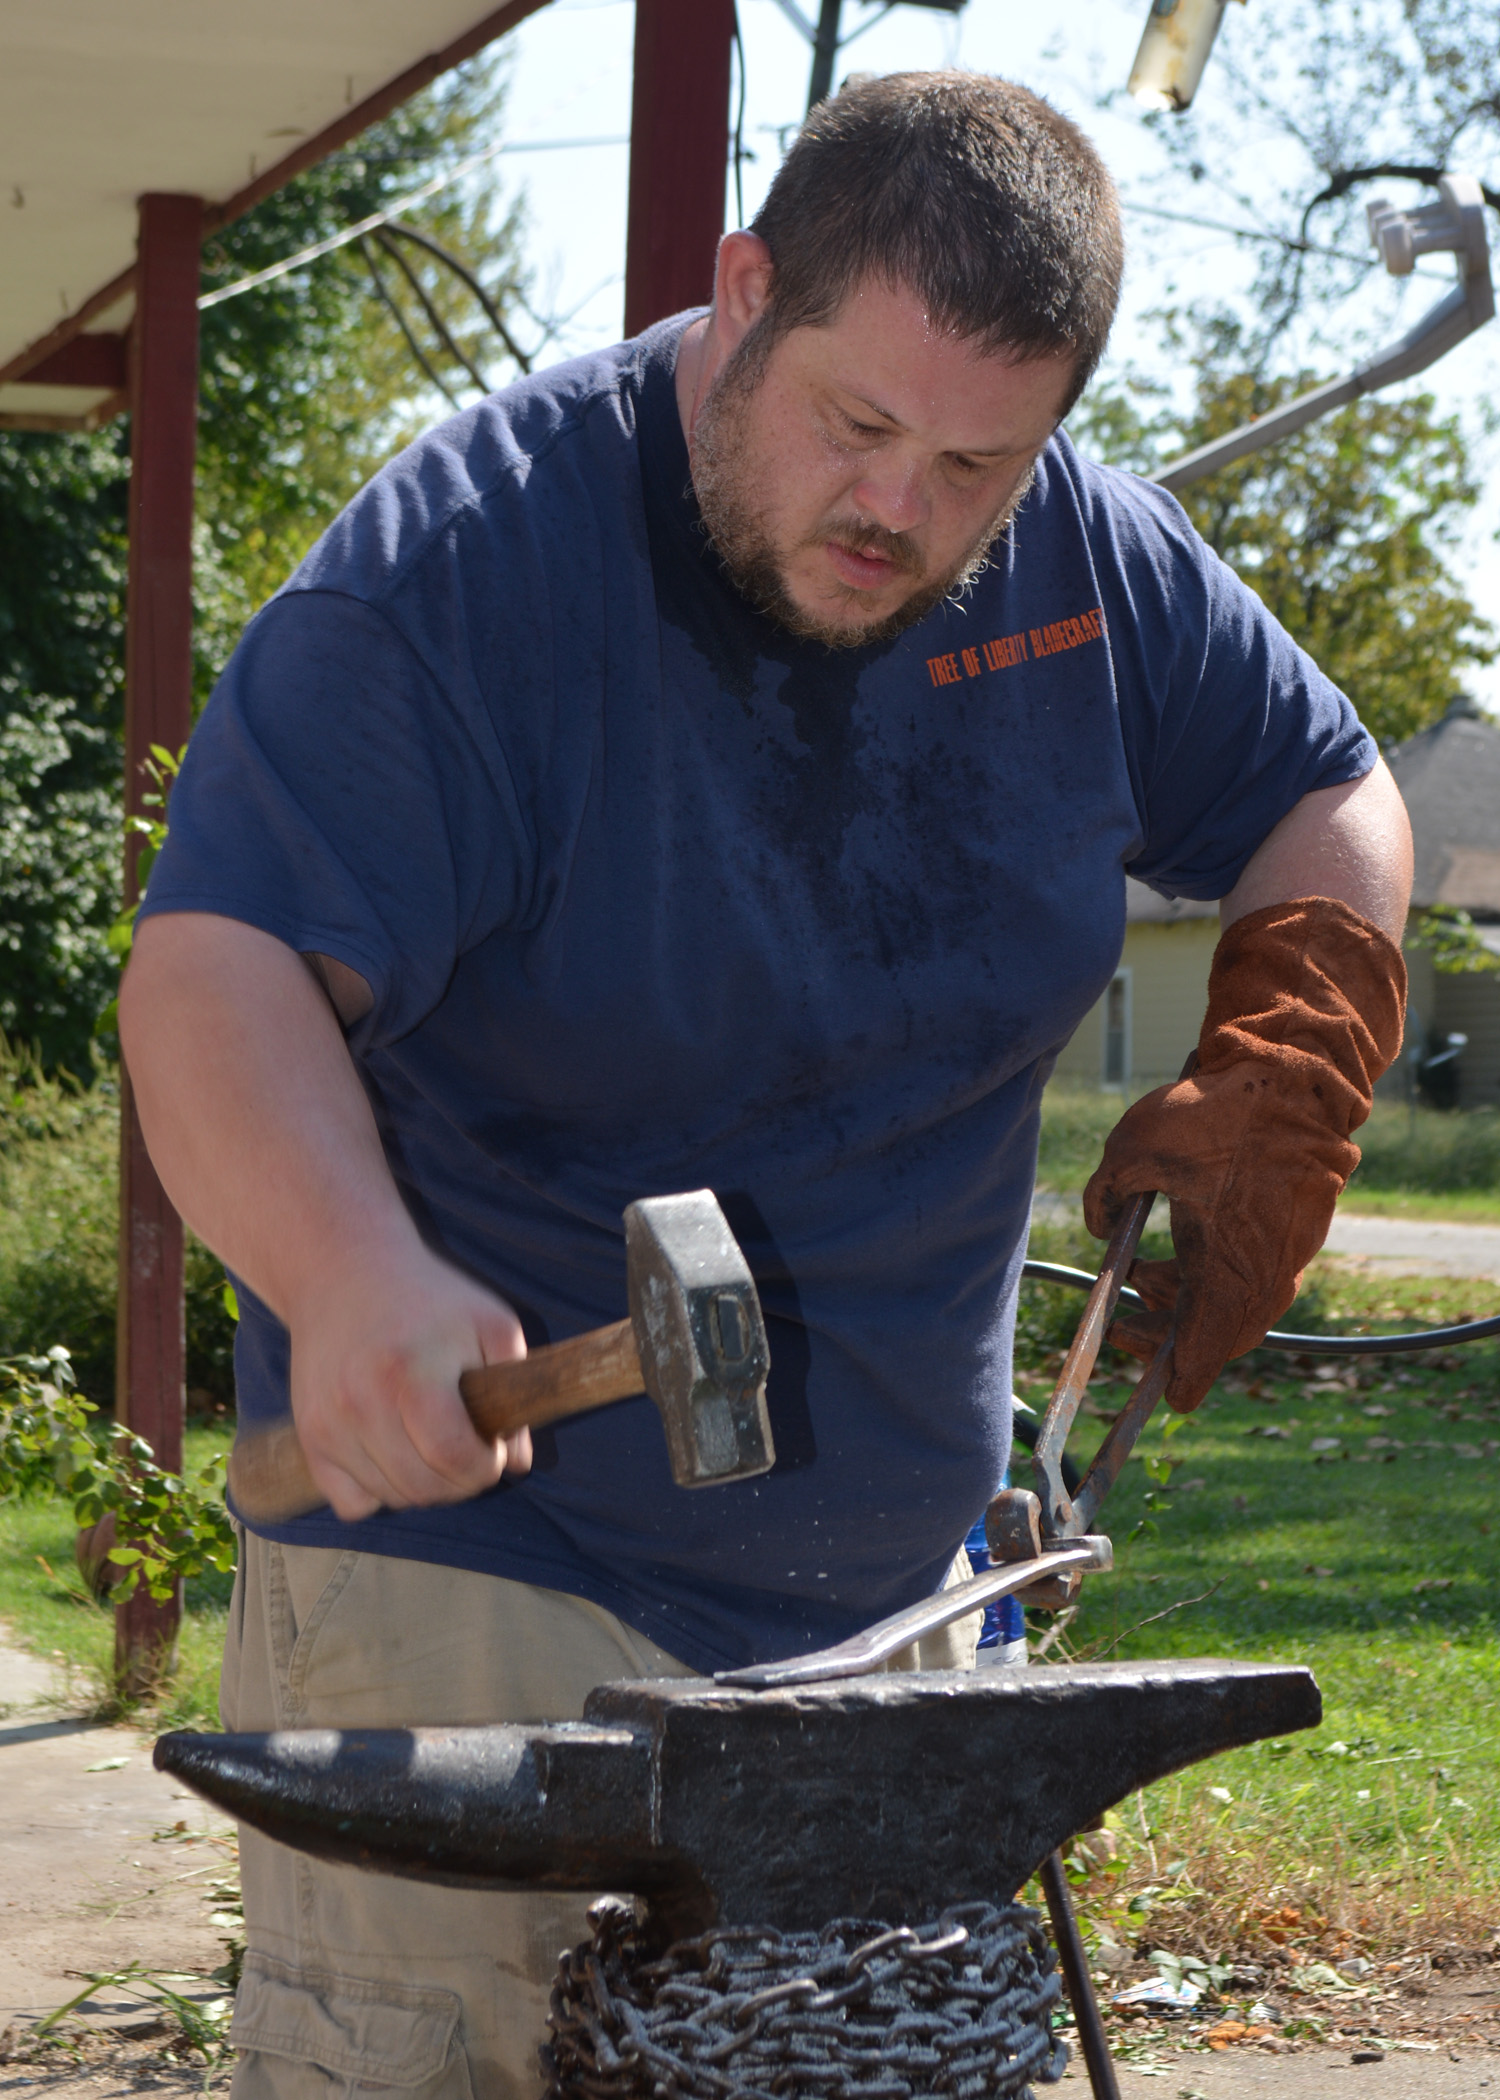 A man hammers a metal item on an anvil.